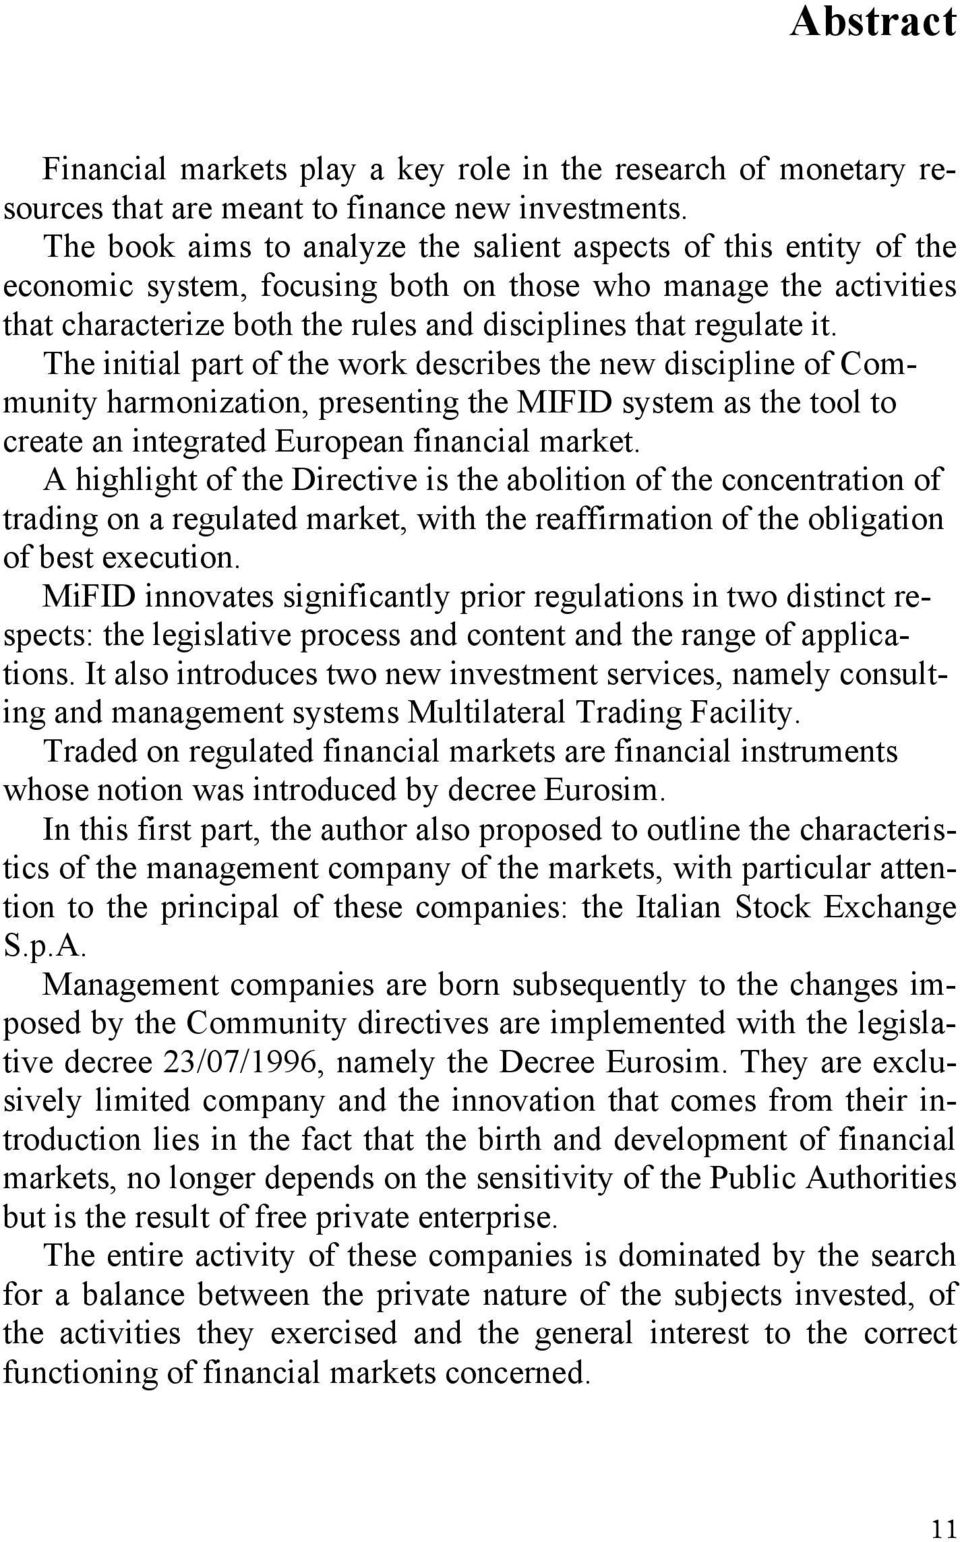 The initial part of the work describes the new discipline of Community harmonization, presenting the MIFID system as the tool to create an integrated European financial market.